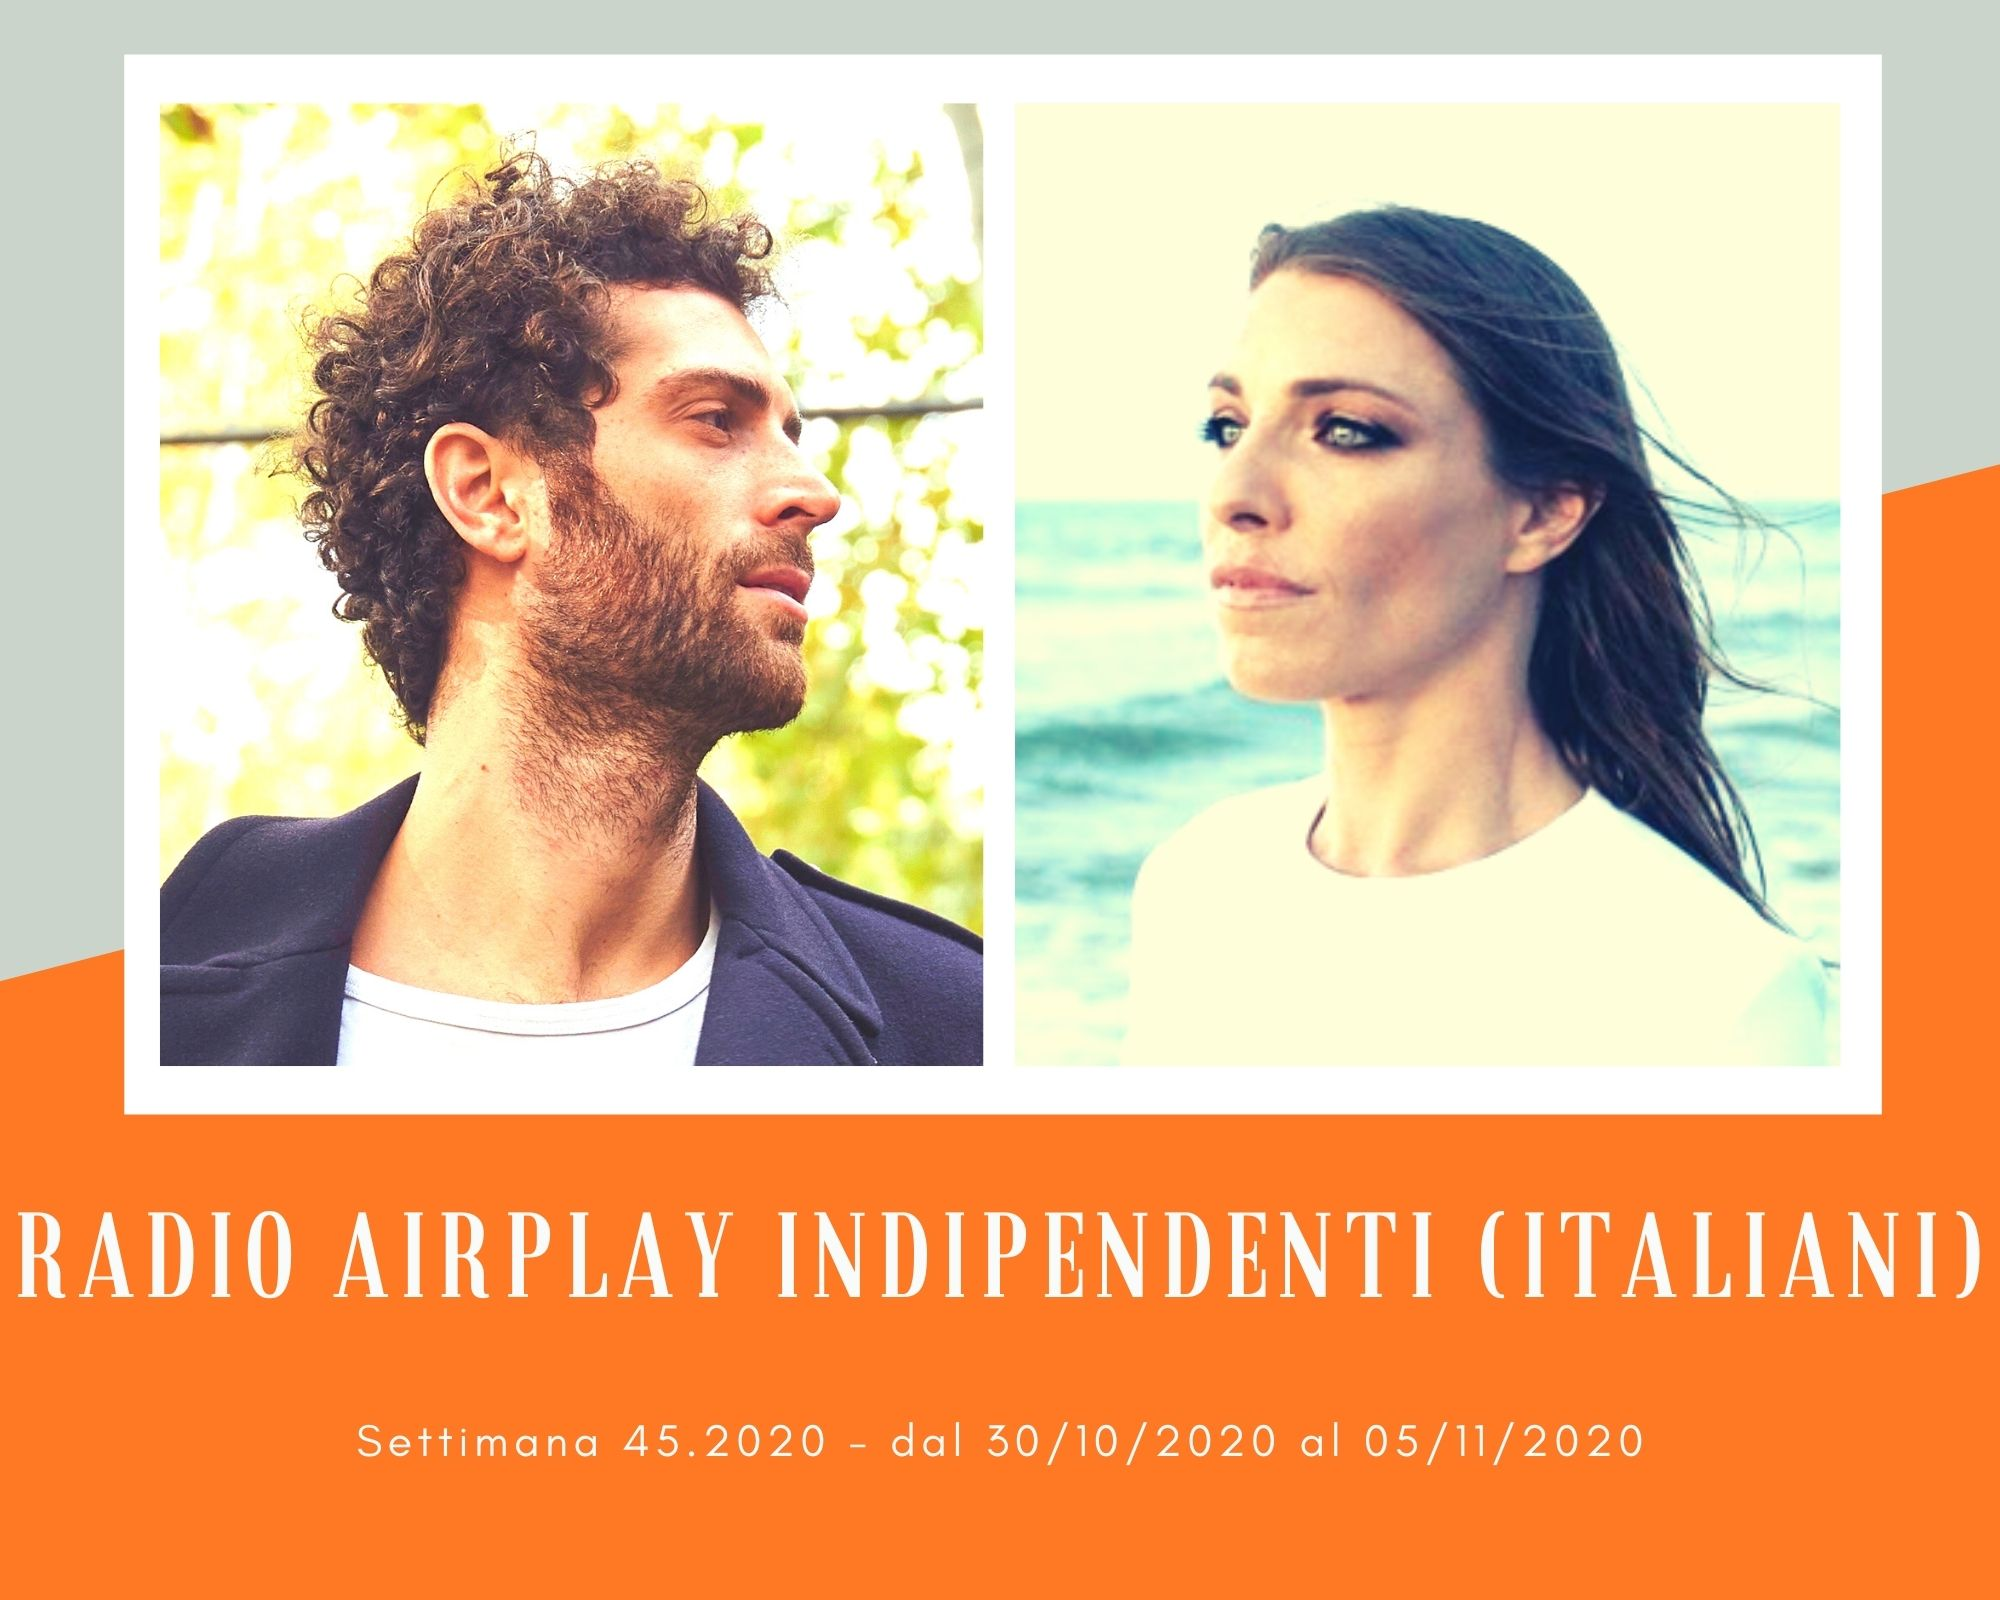 Classifica RADIO AIRPLAY Indipendenti Italiani, week 45. Loredana Errore e Marco Guazzone piacciono